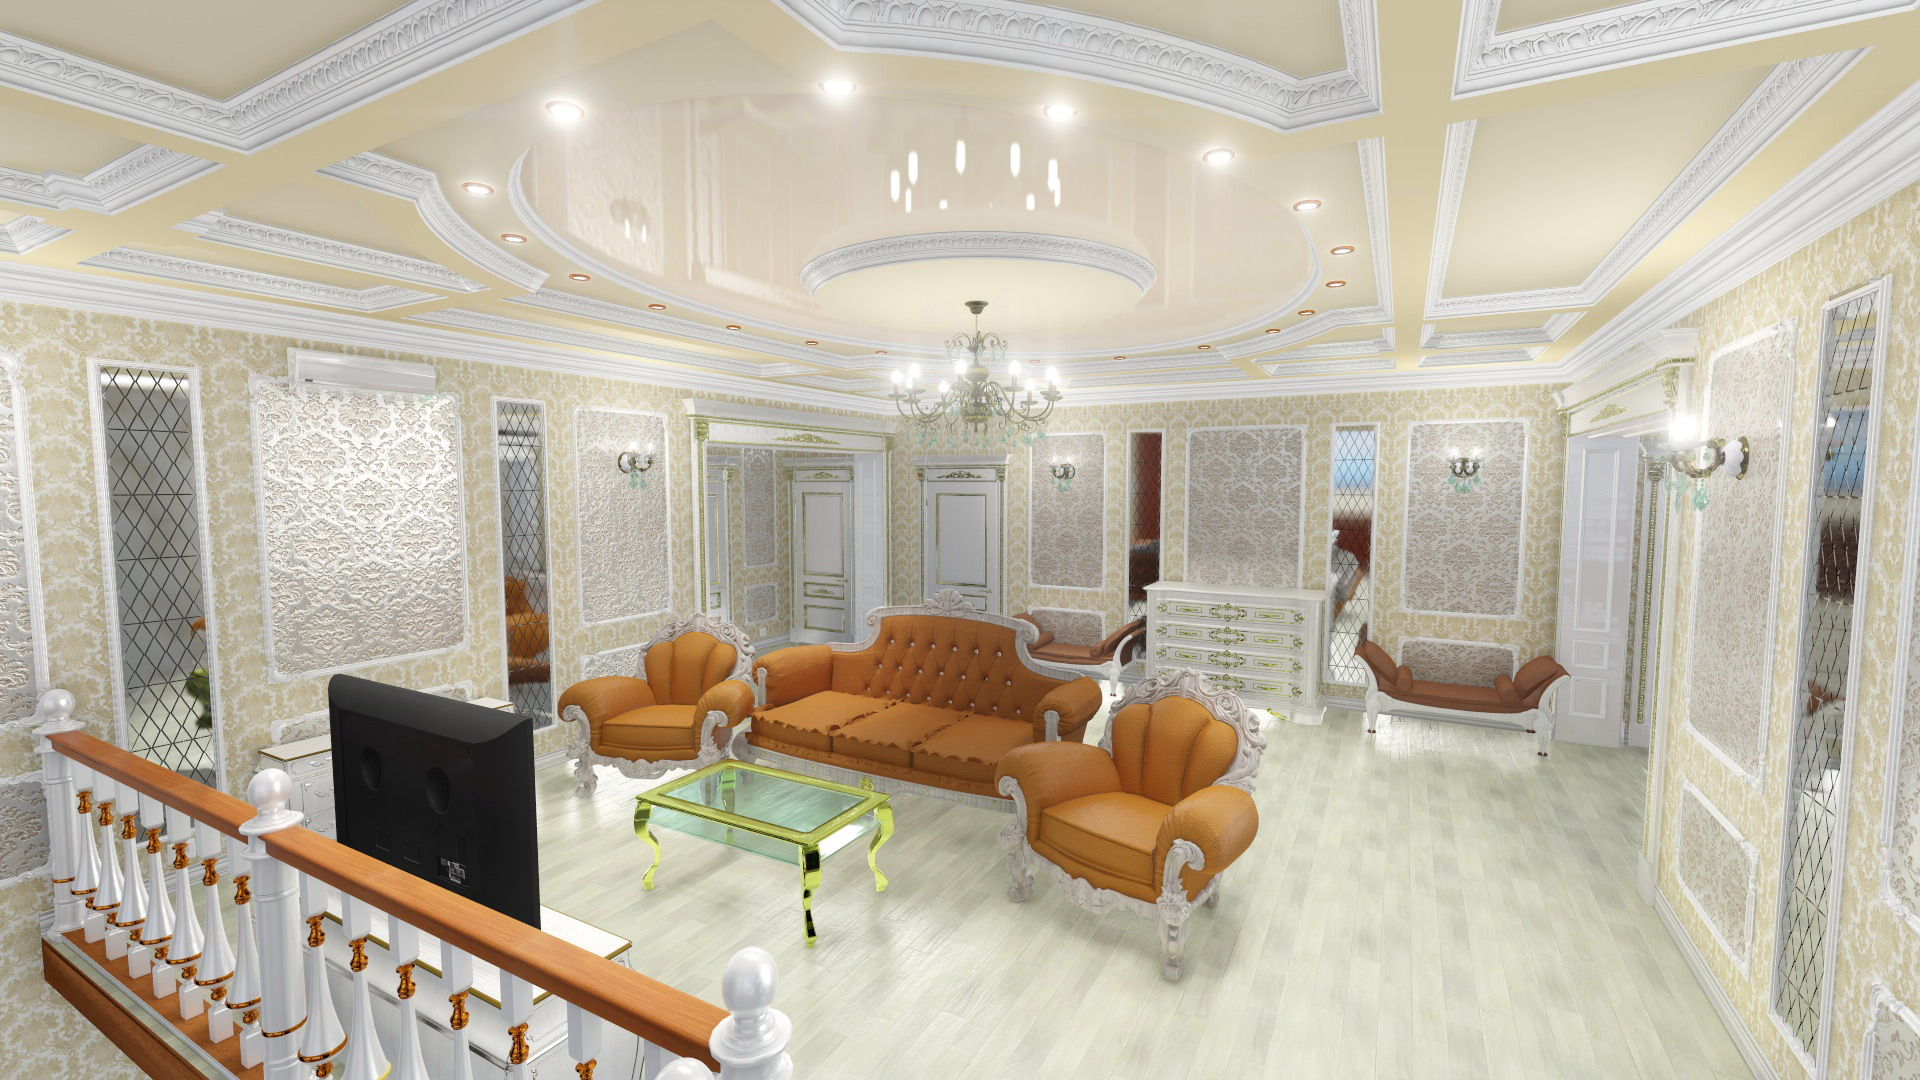 Hall 2nd floor private cottage. (Video attached) in Cinema 4d Other image